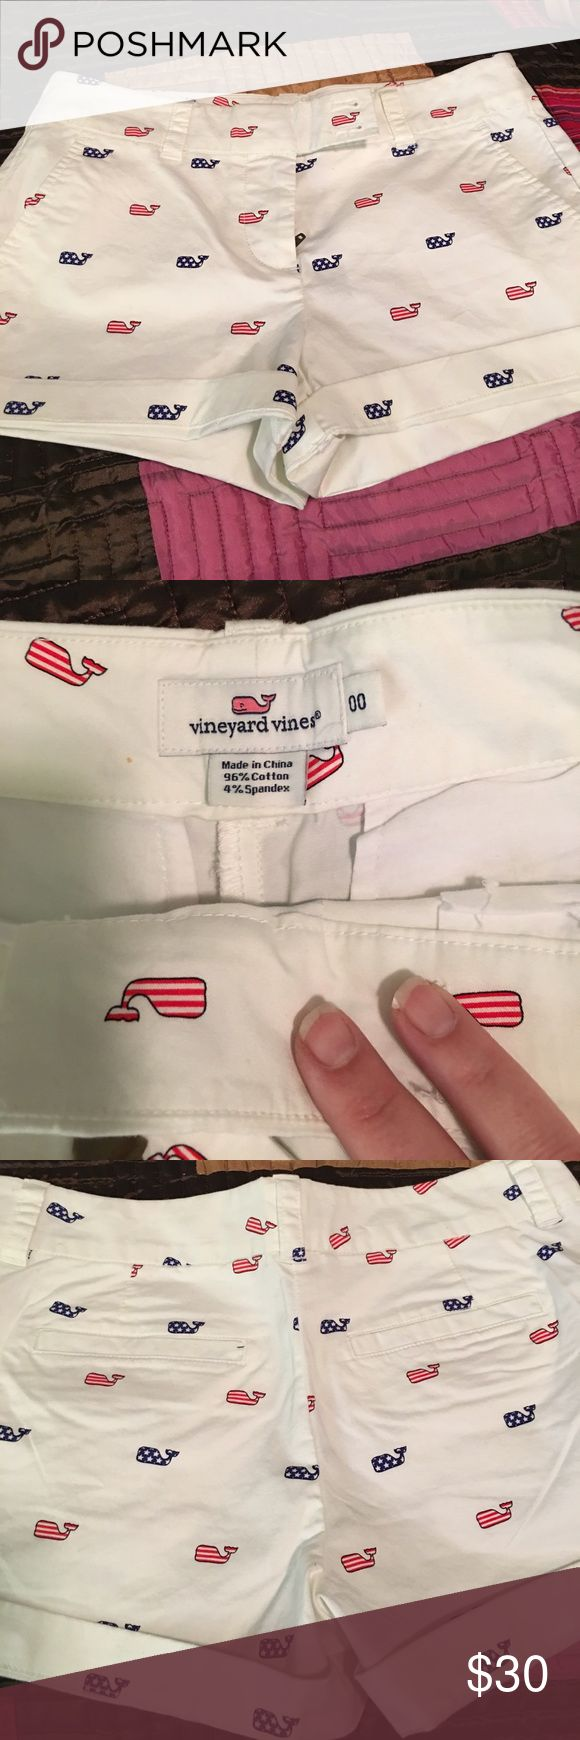 NWOT Vineyard Vines Shorts Darling red, white, and blue Vineyard Vines whale shorts. Perfect for the 4th of July. Please ask questions. No lowball offers or trades. Reasonable offers accepted! Vineyard Vines Shorts